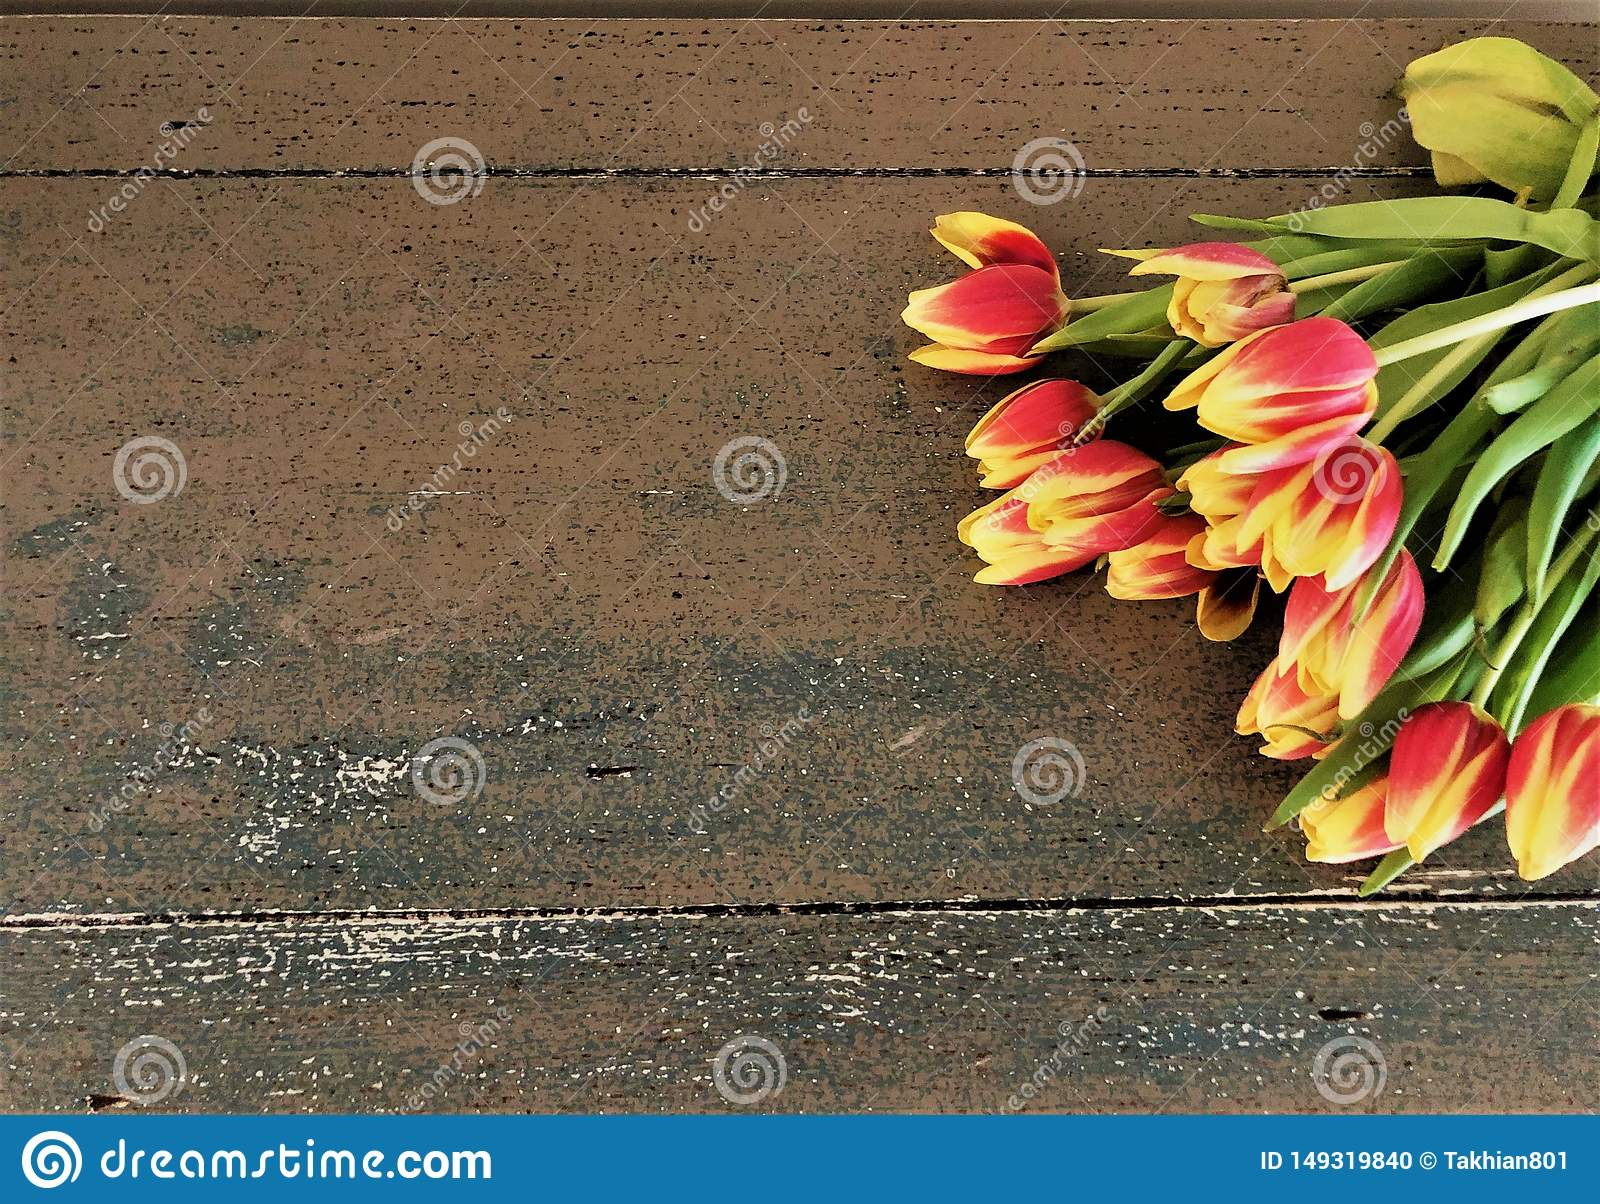 Tulips laying on a table